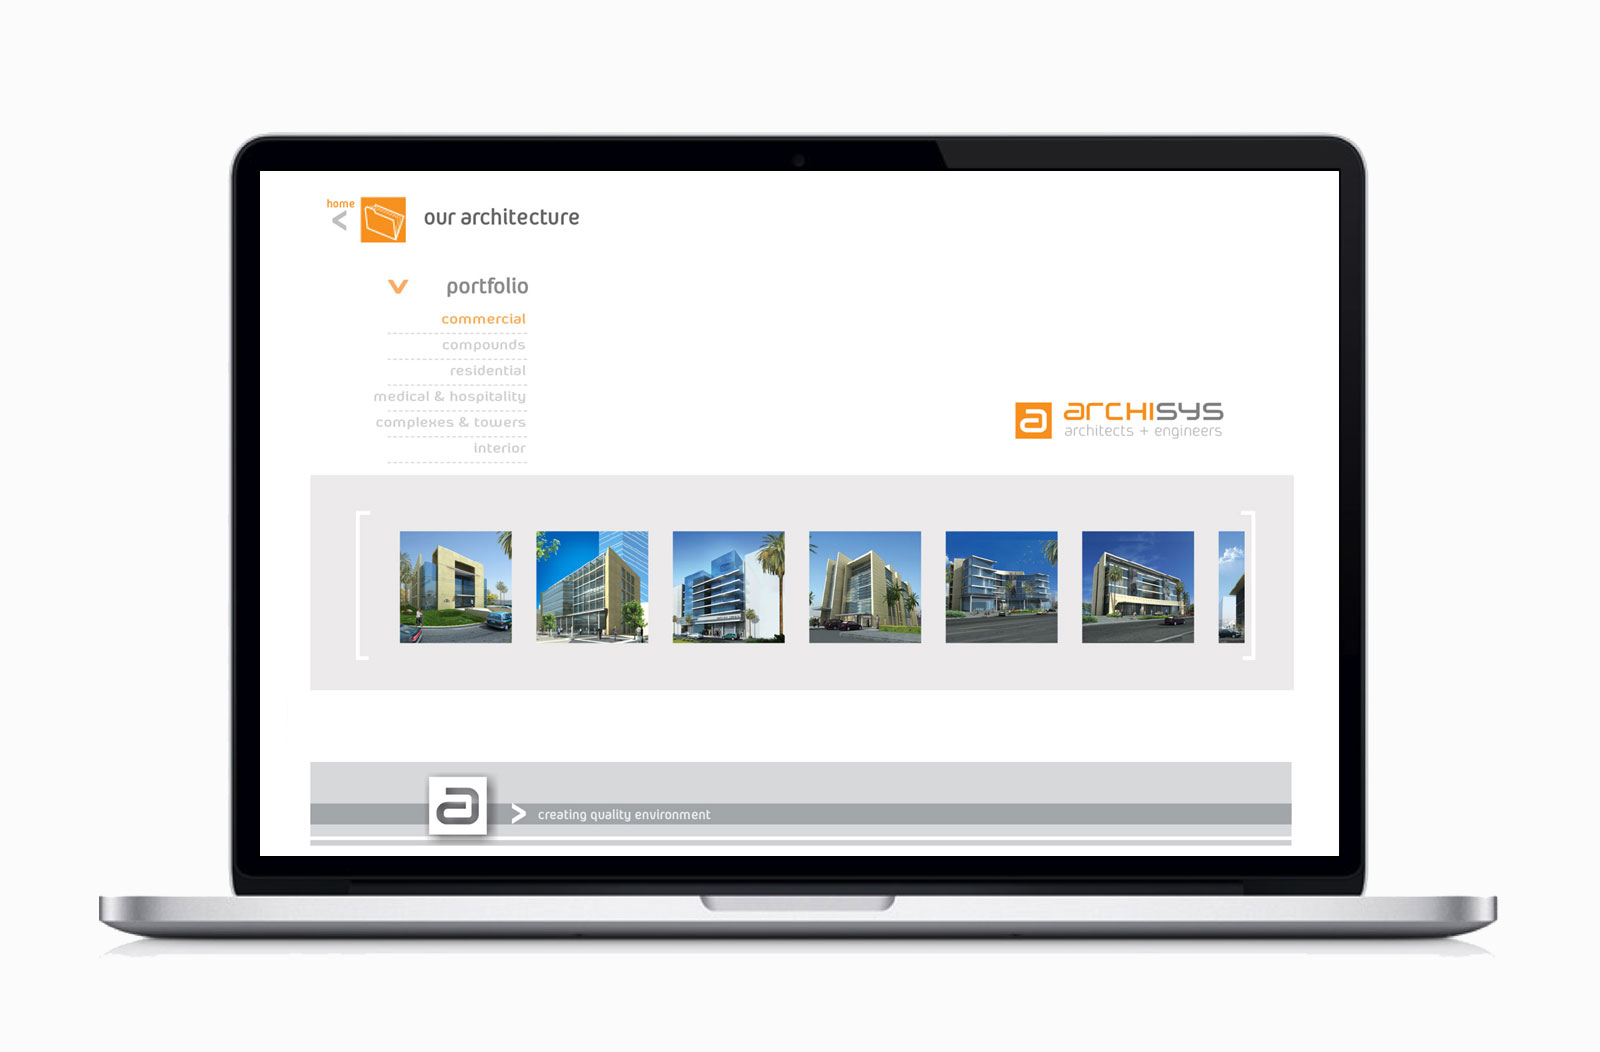 Portfolio page in Archysis website designed by Creations